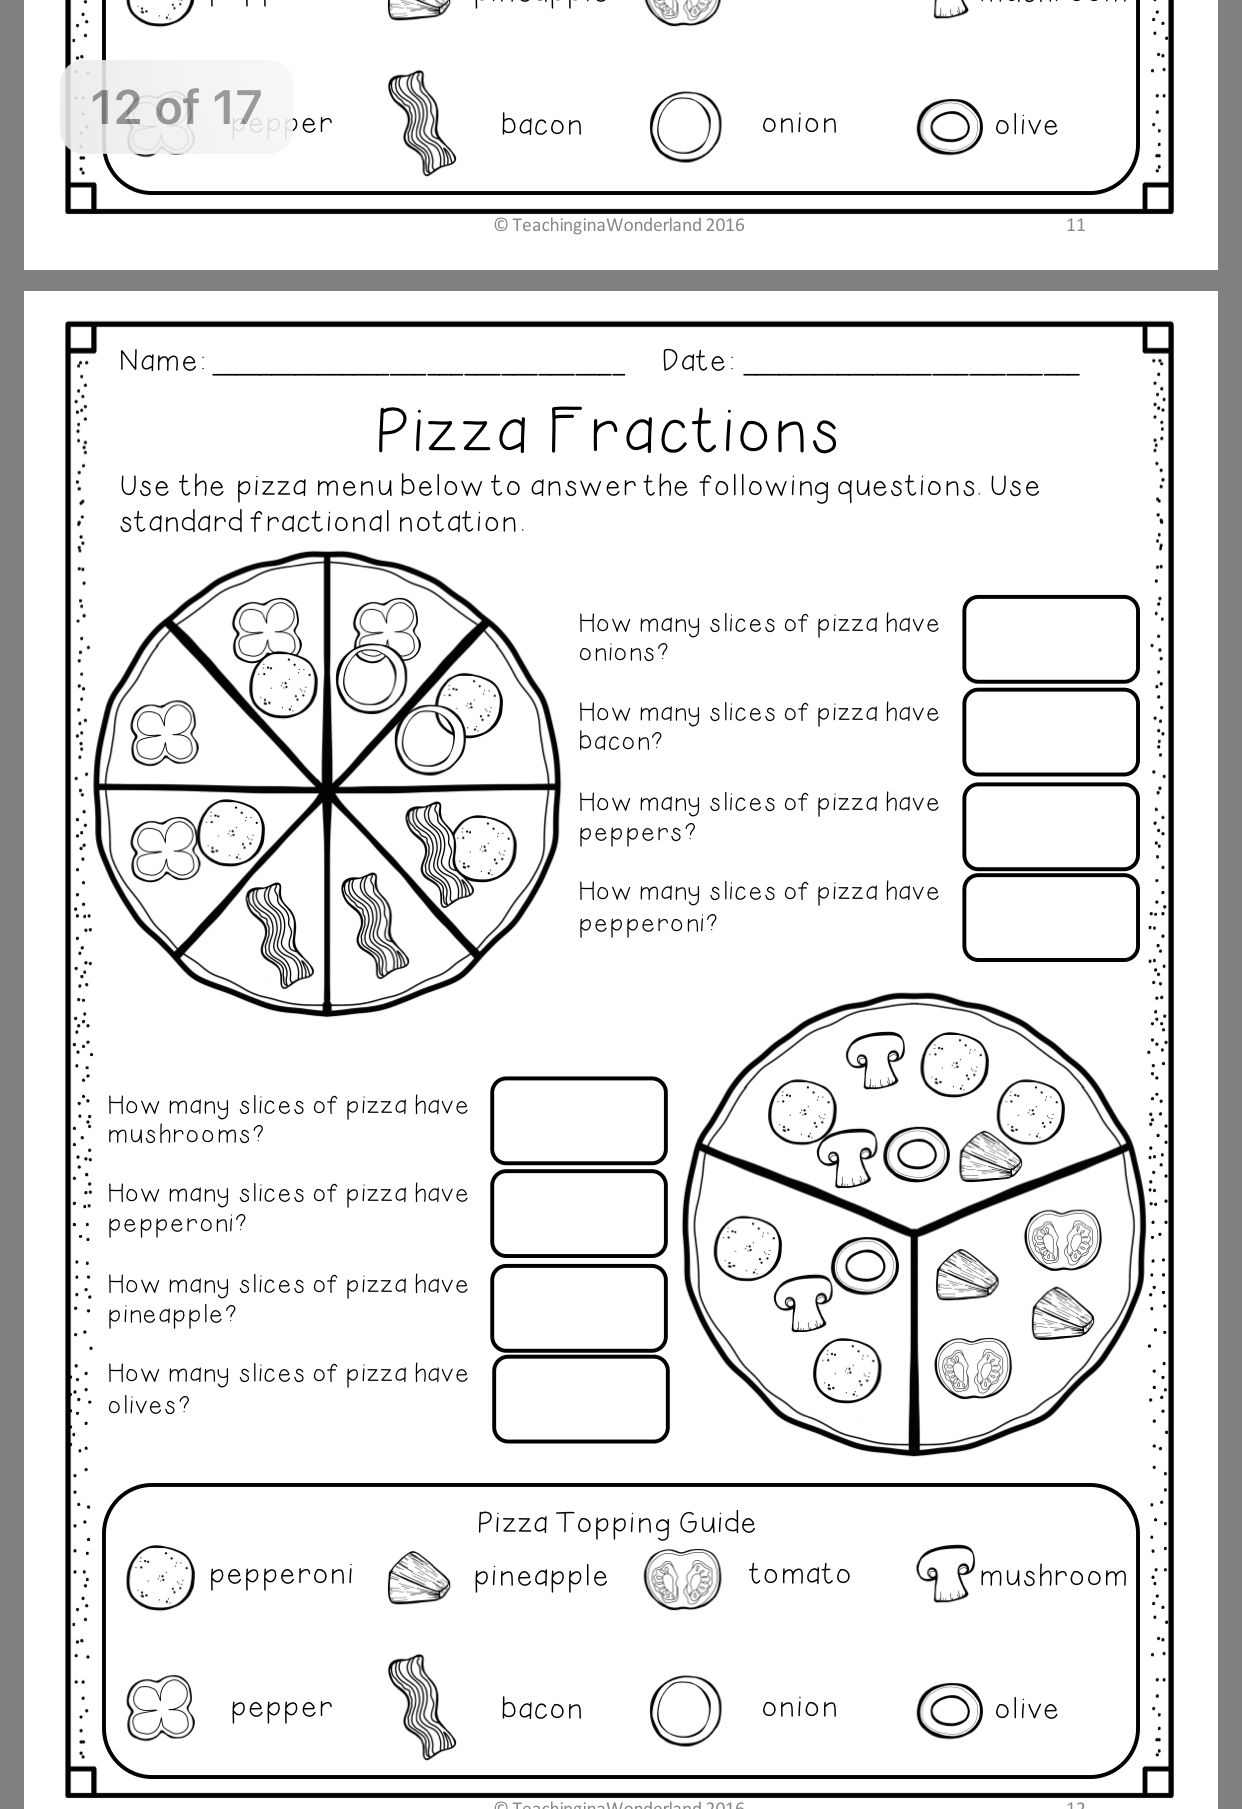 Pin By Ann Parisher On Math Fraction Activities Pizza Fractions Fractions [ 1809 x 1242 Pixel ]